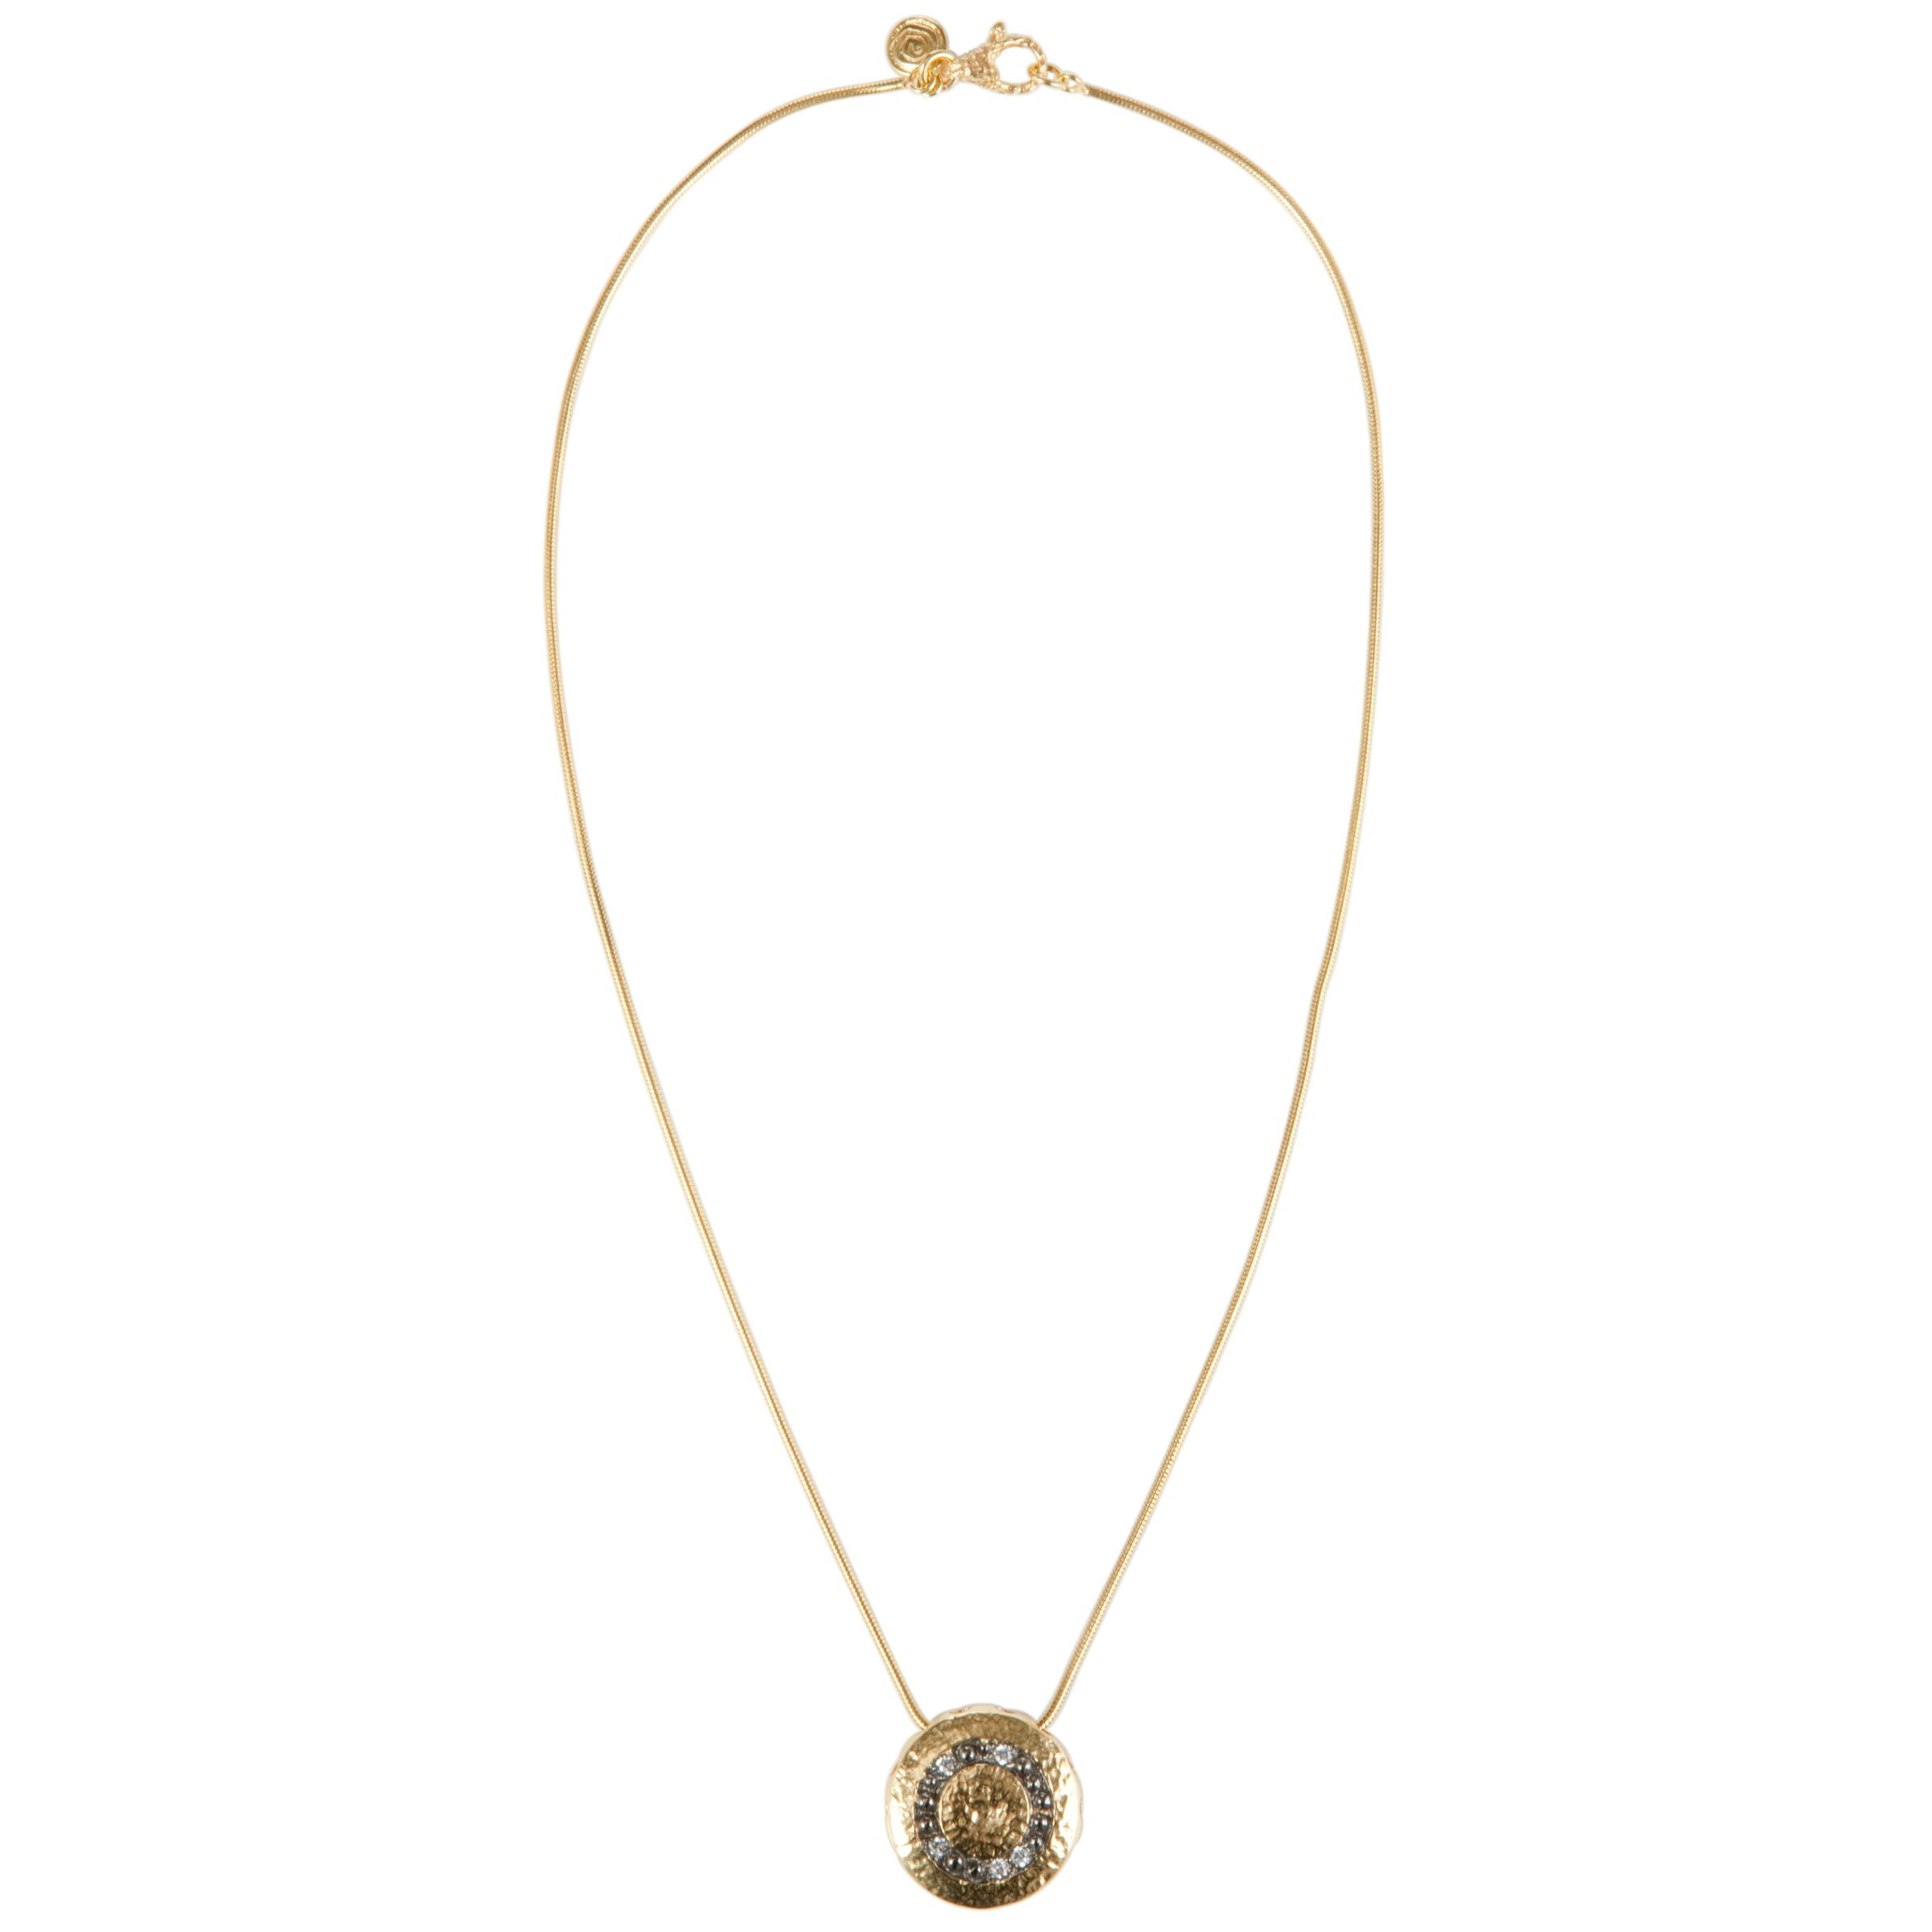 Etrusca 18ct Gold Plated Pendant Necklace